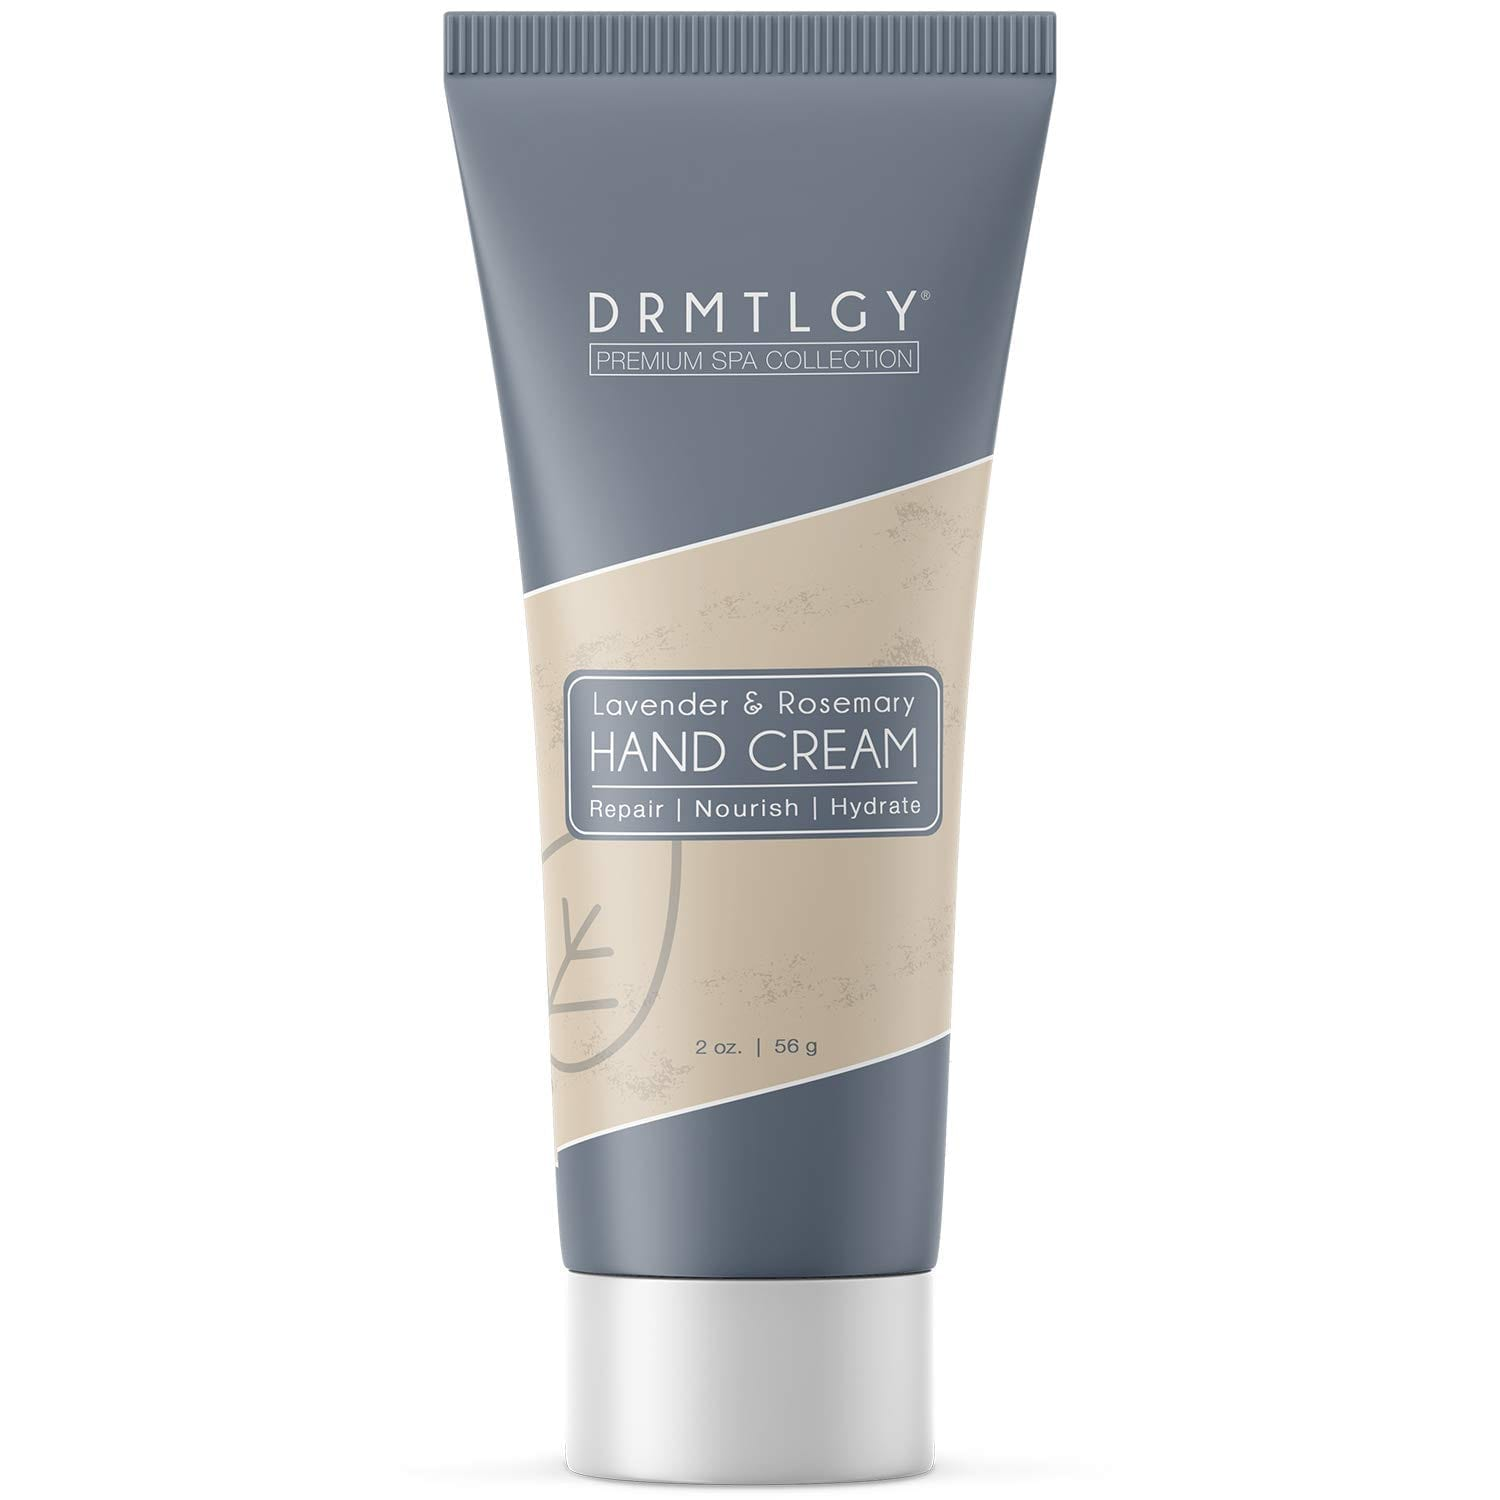 Hand Cream Shea Butter Lotion by DRMTLGY